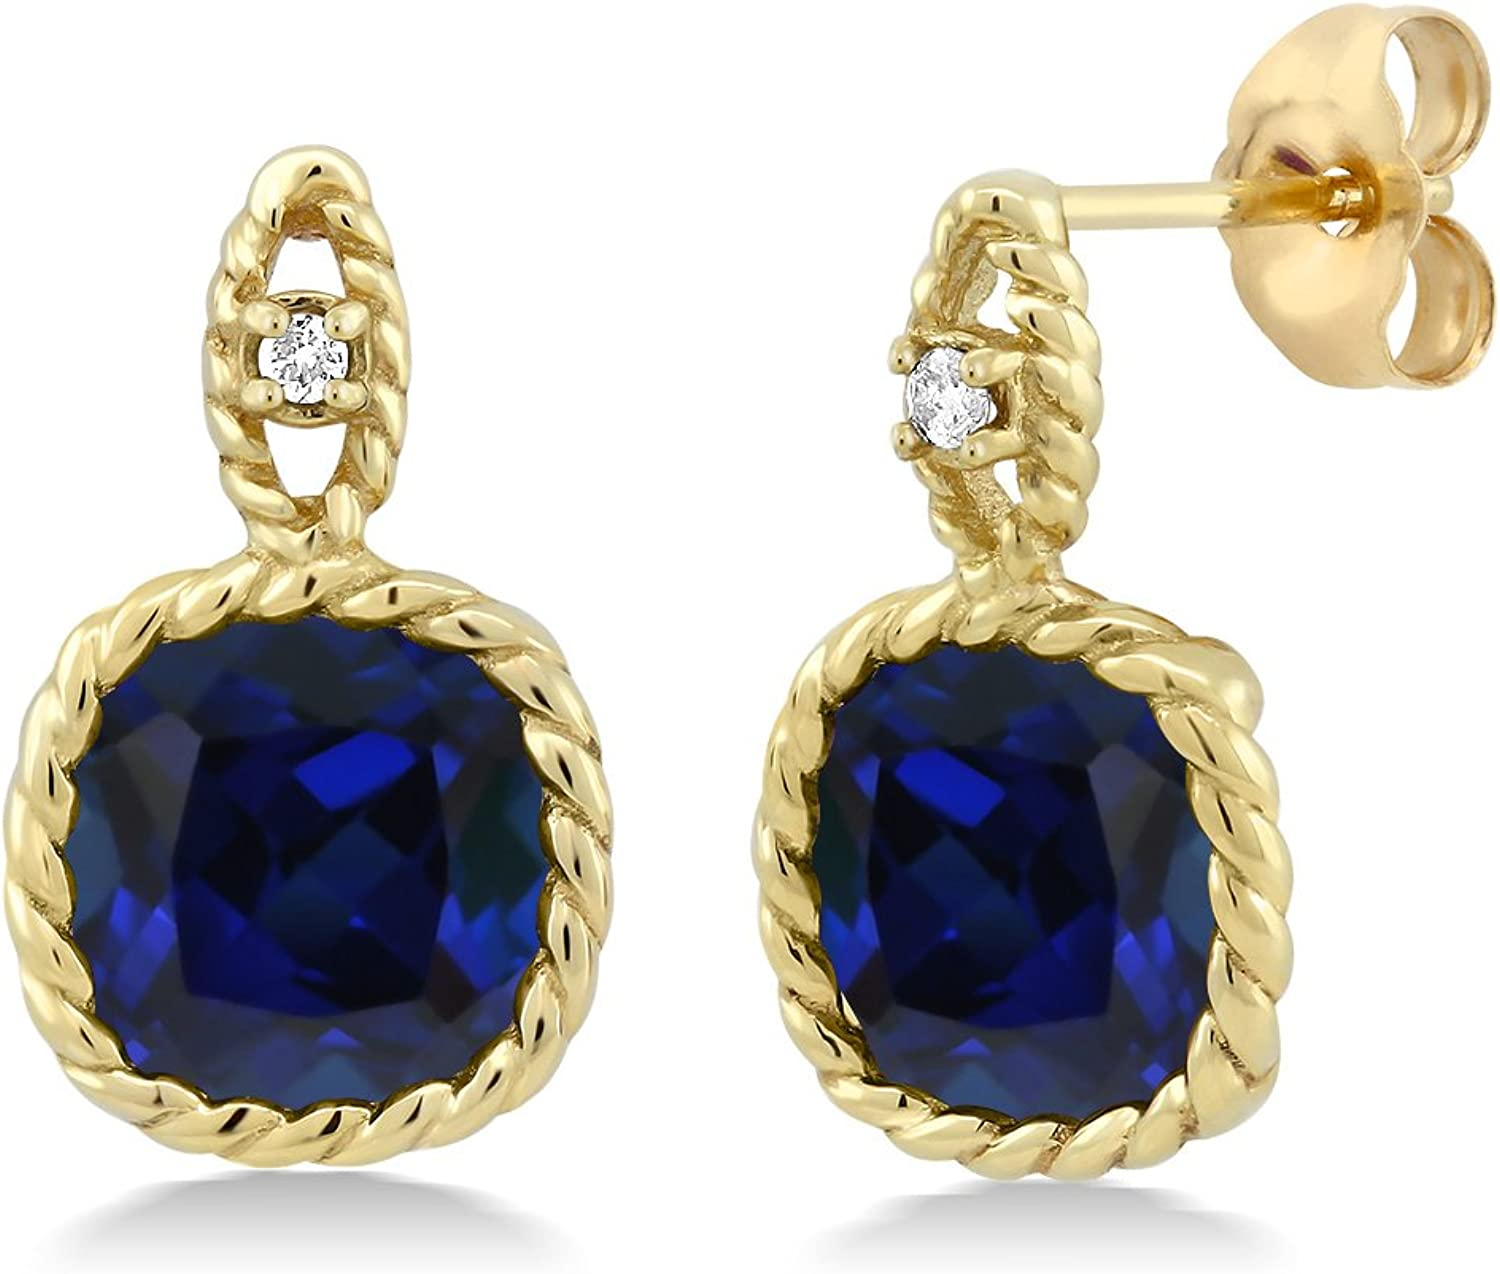 10K Yellow gold 5.00 Ct 8mm Cushion Simulated Sapphire & Diamond Cable Earrings